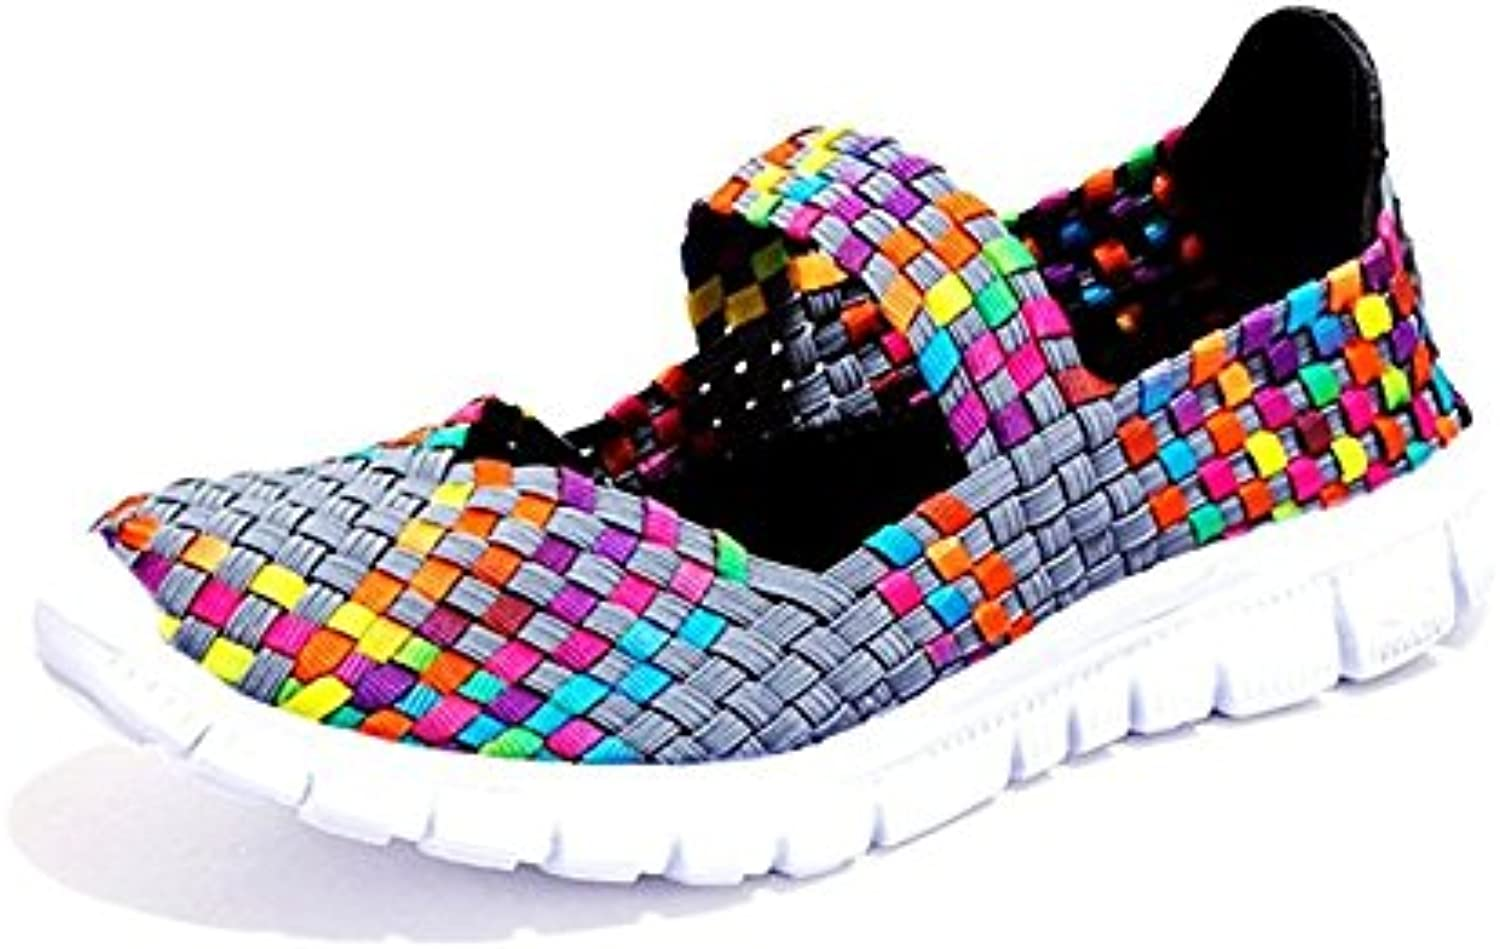 Laofu Women's Casual Lightweight Water shoes Breathable Comfort Woven shoes for Walking Running Camping